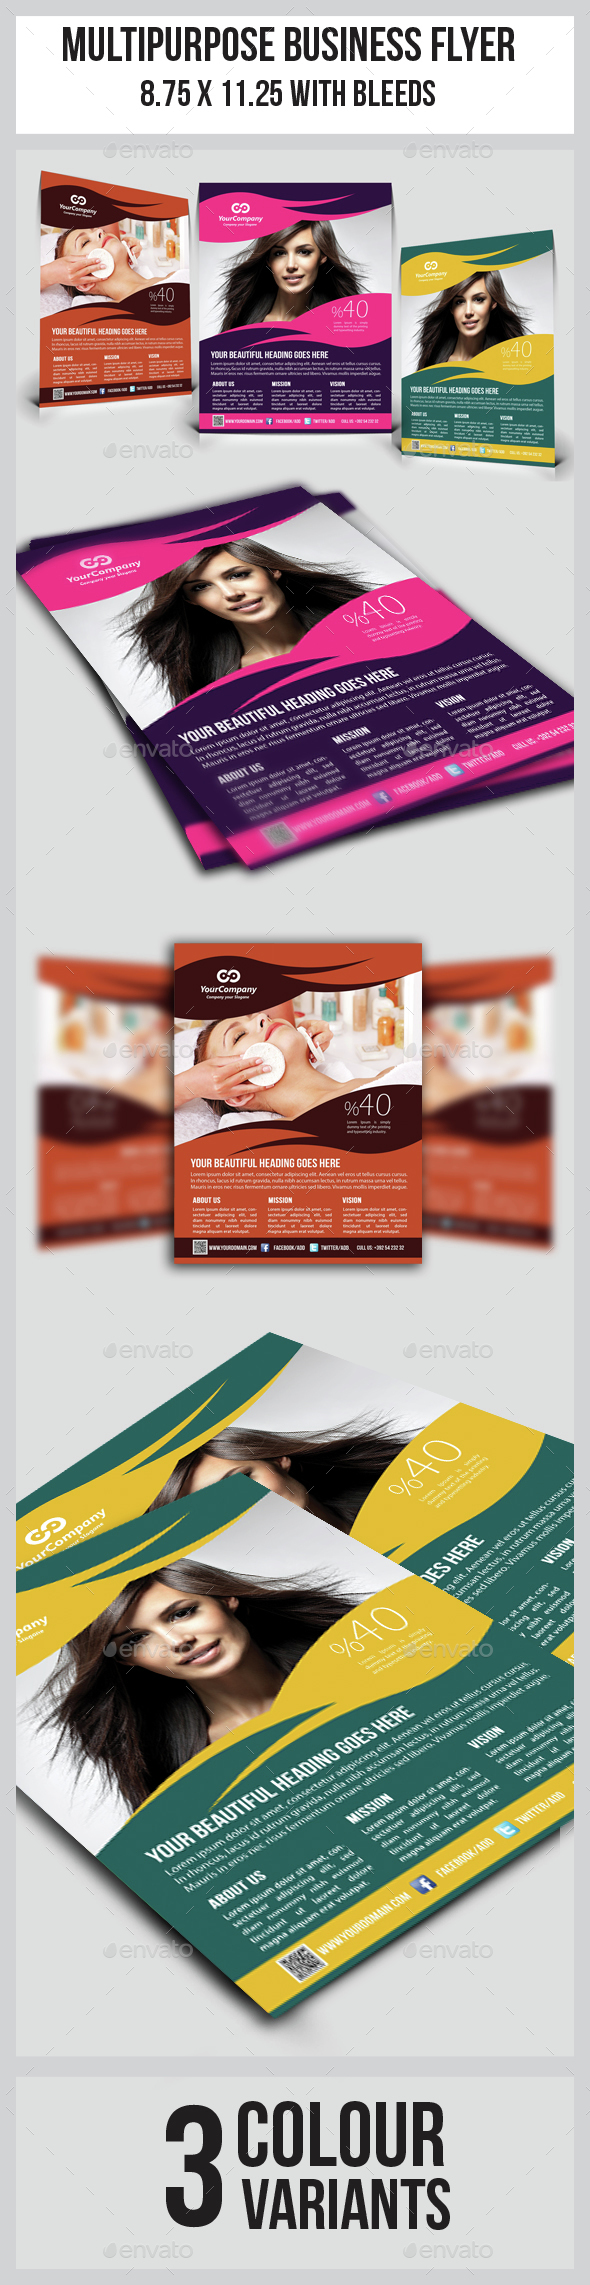 Hair & Beauty Salon Business Flyer